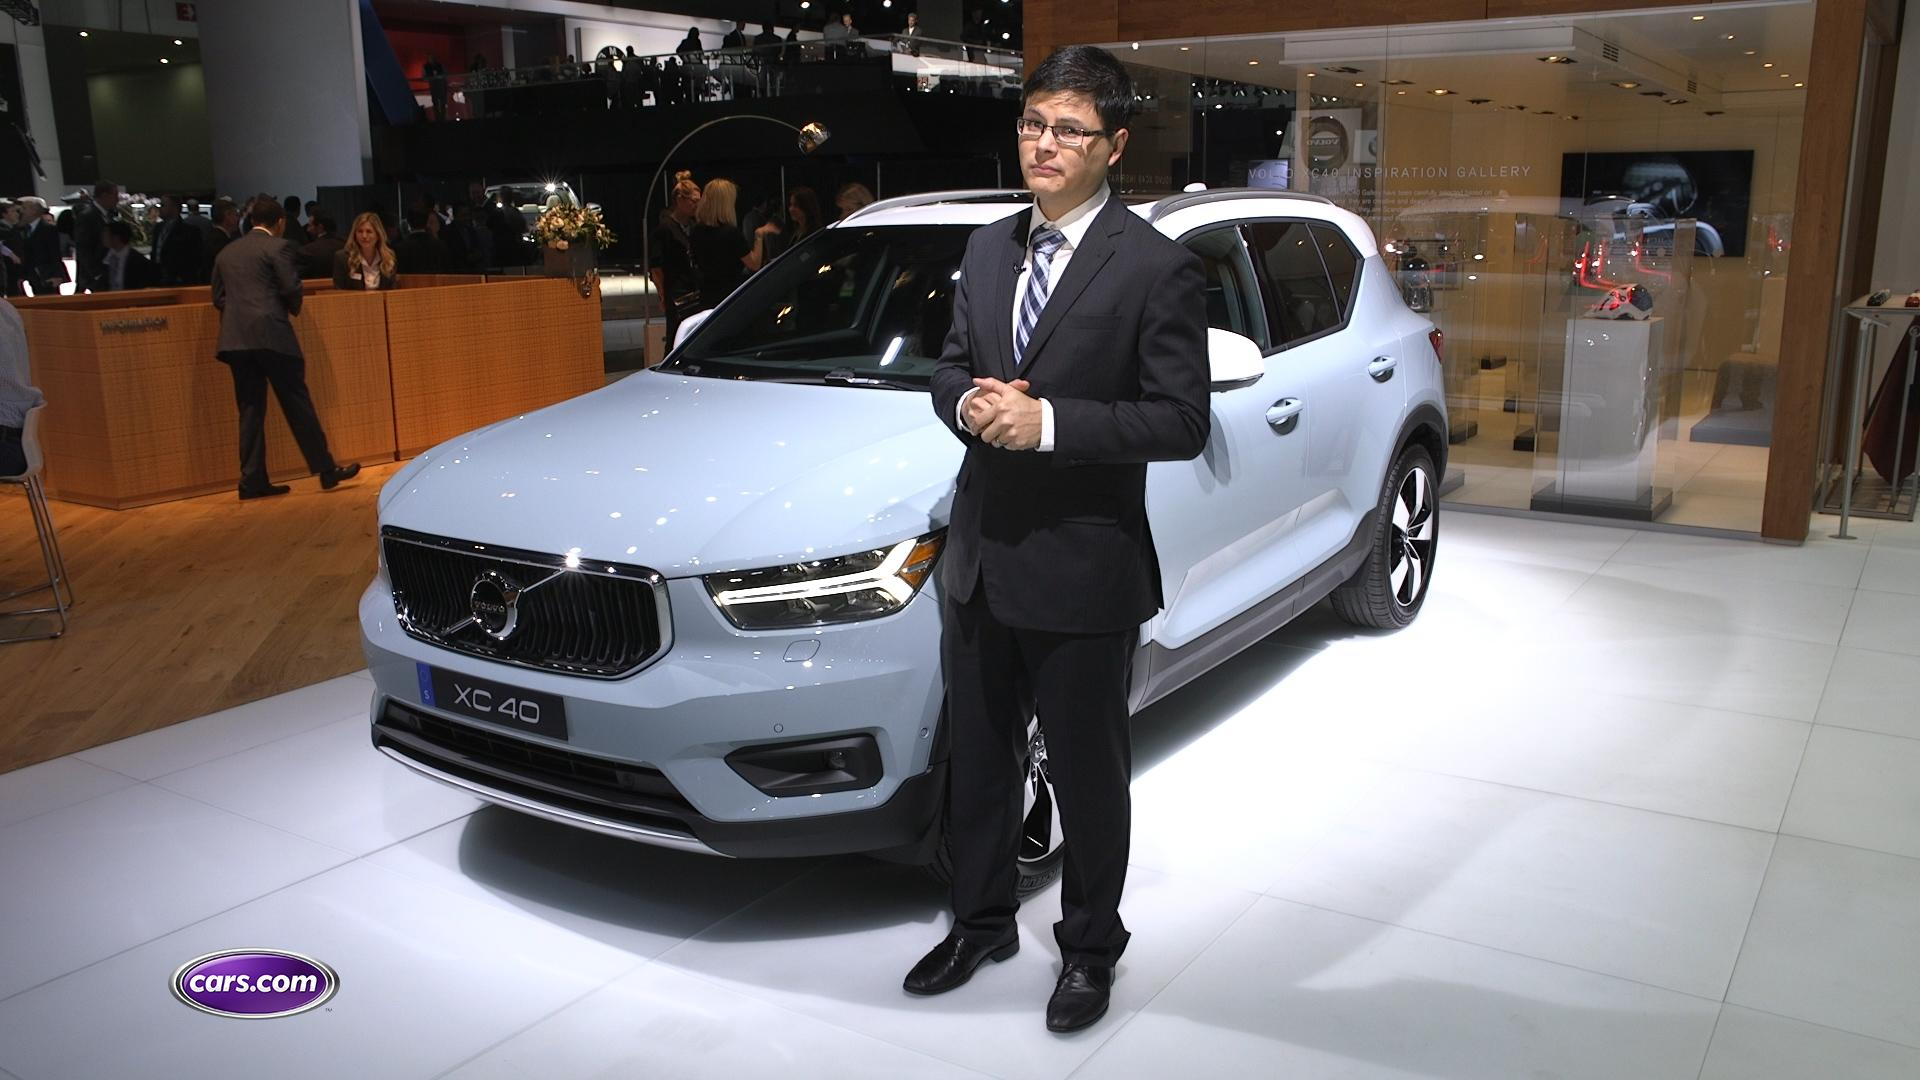 Video: Volvo XC40: First Impressions — Cars.com